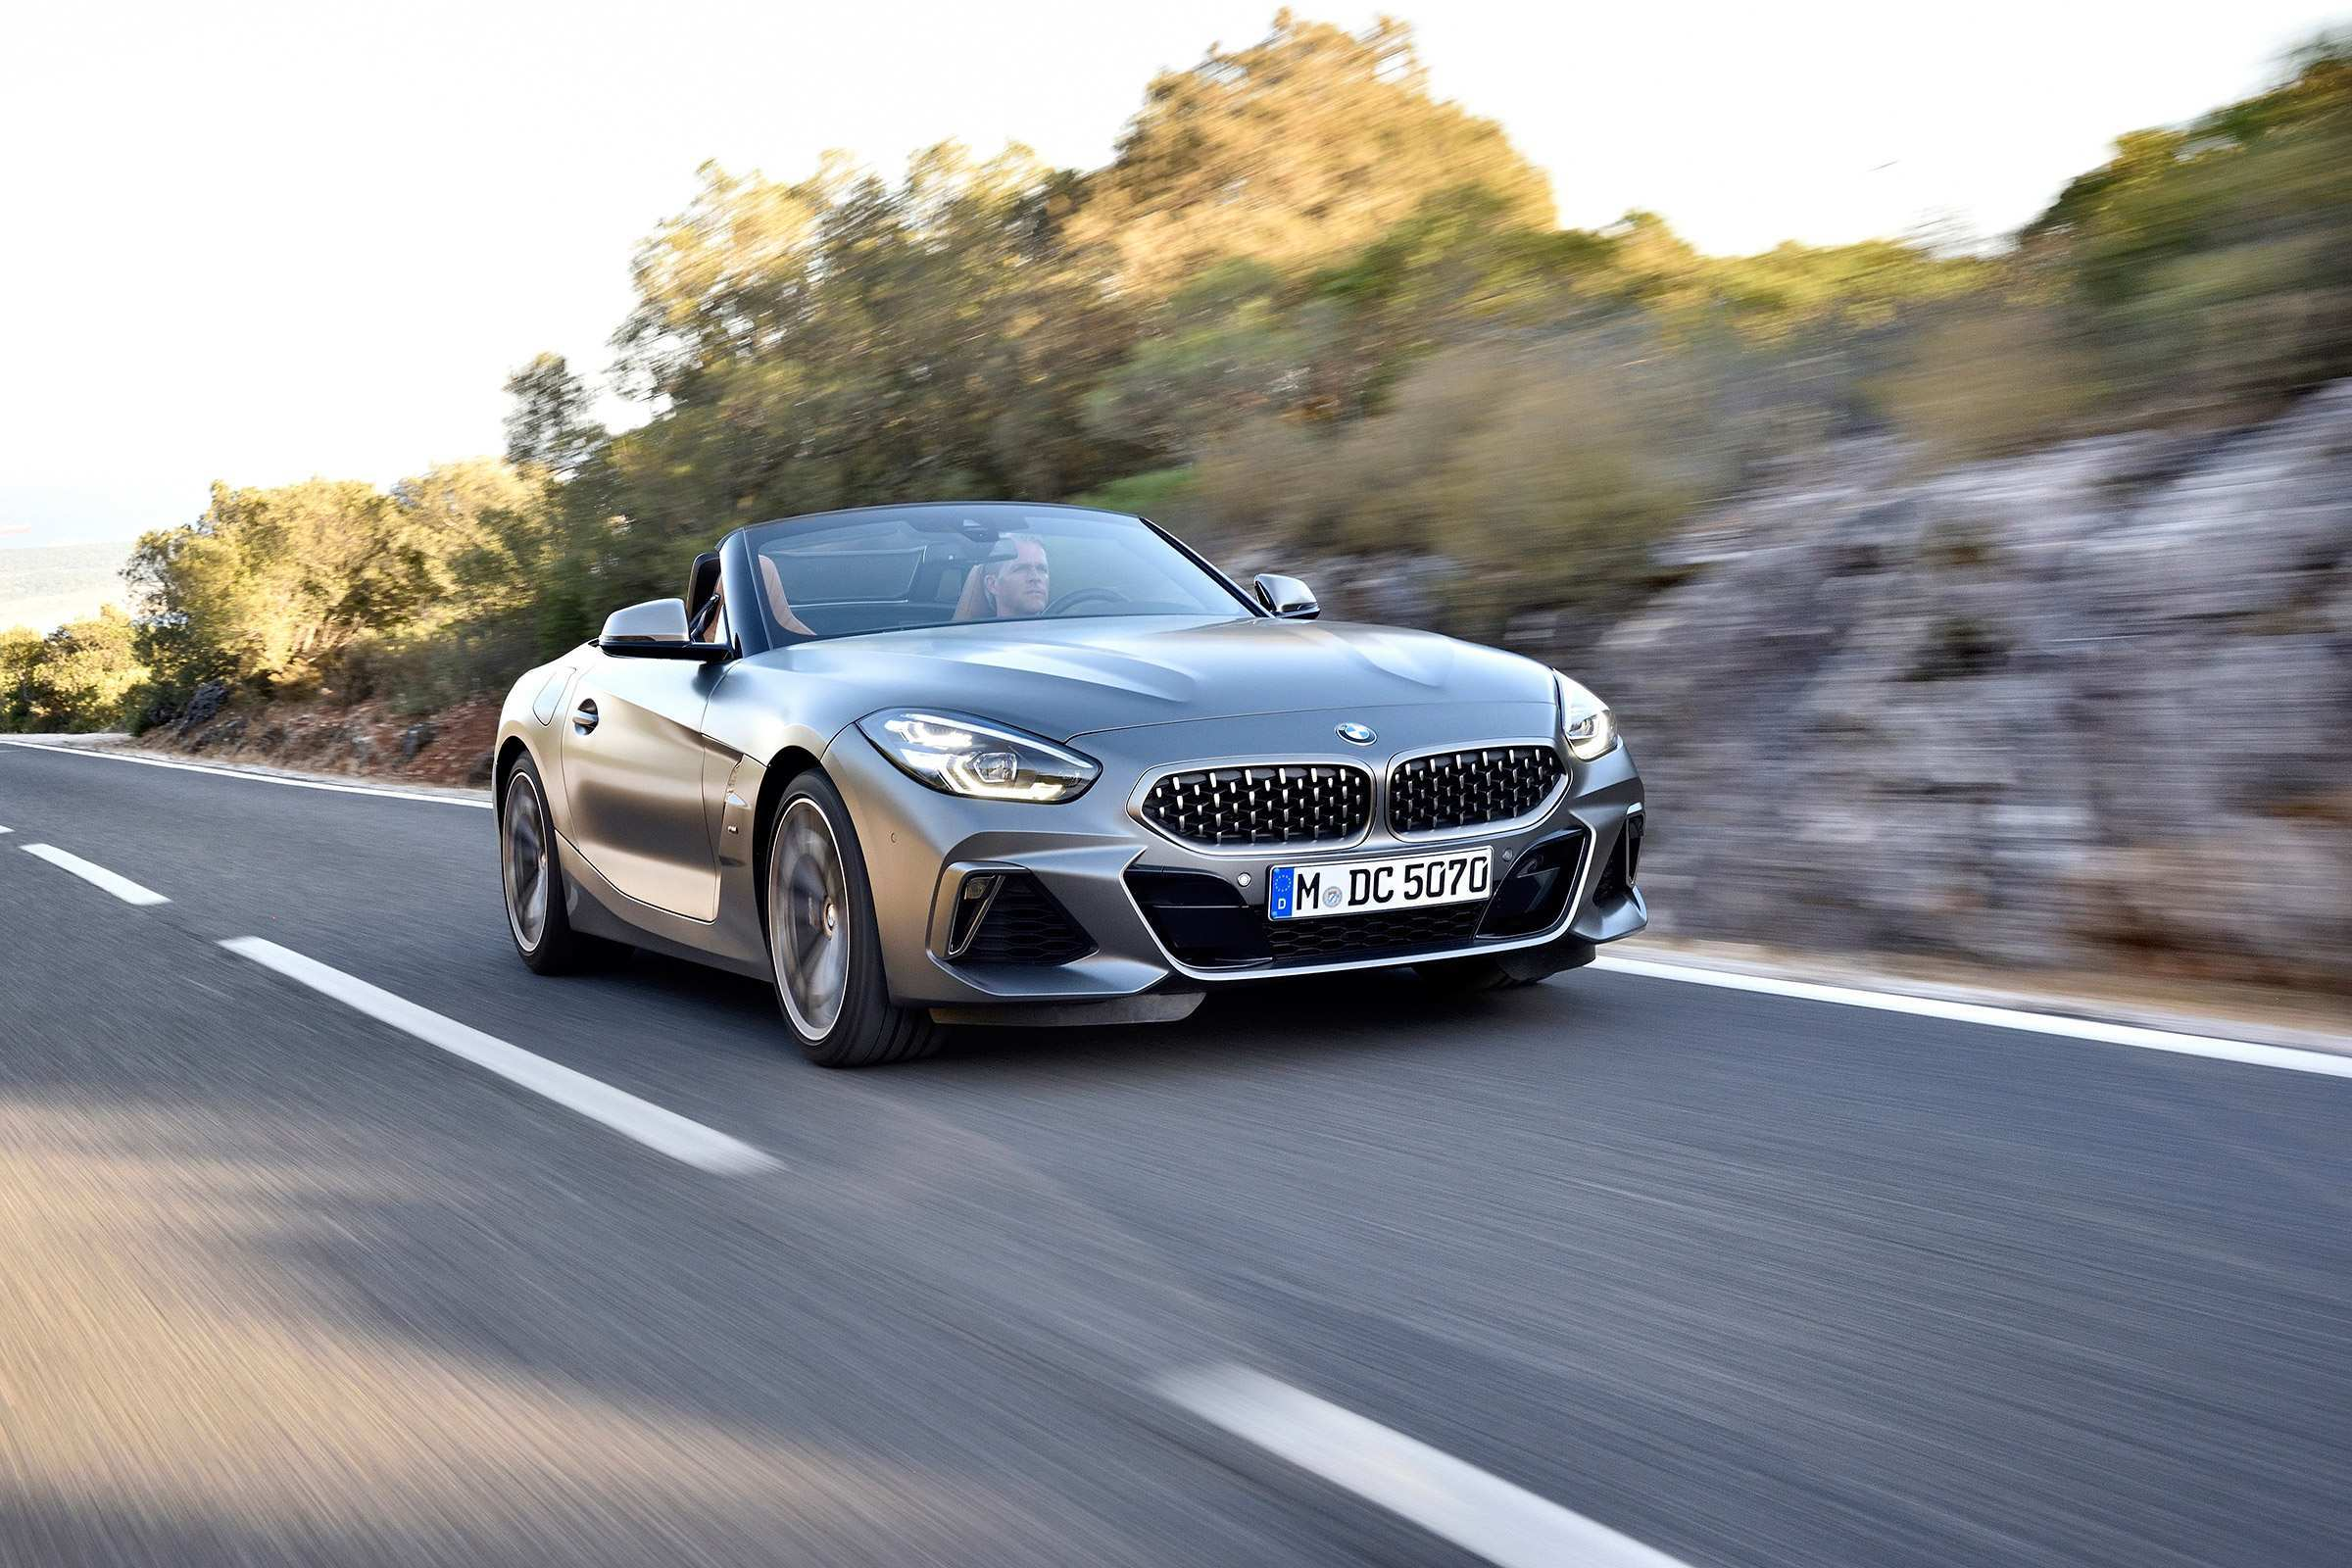 50 All New The Bmw 2019 Z4 Dimensions Specs And Review History with The Bmw 2019 Z4 Dimensions Specs And Review